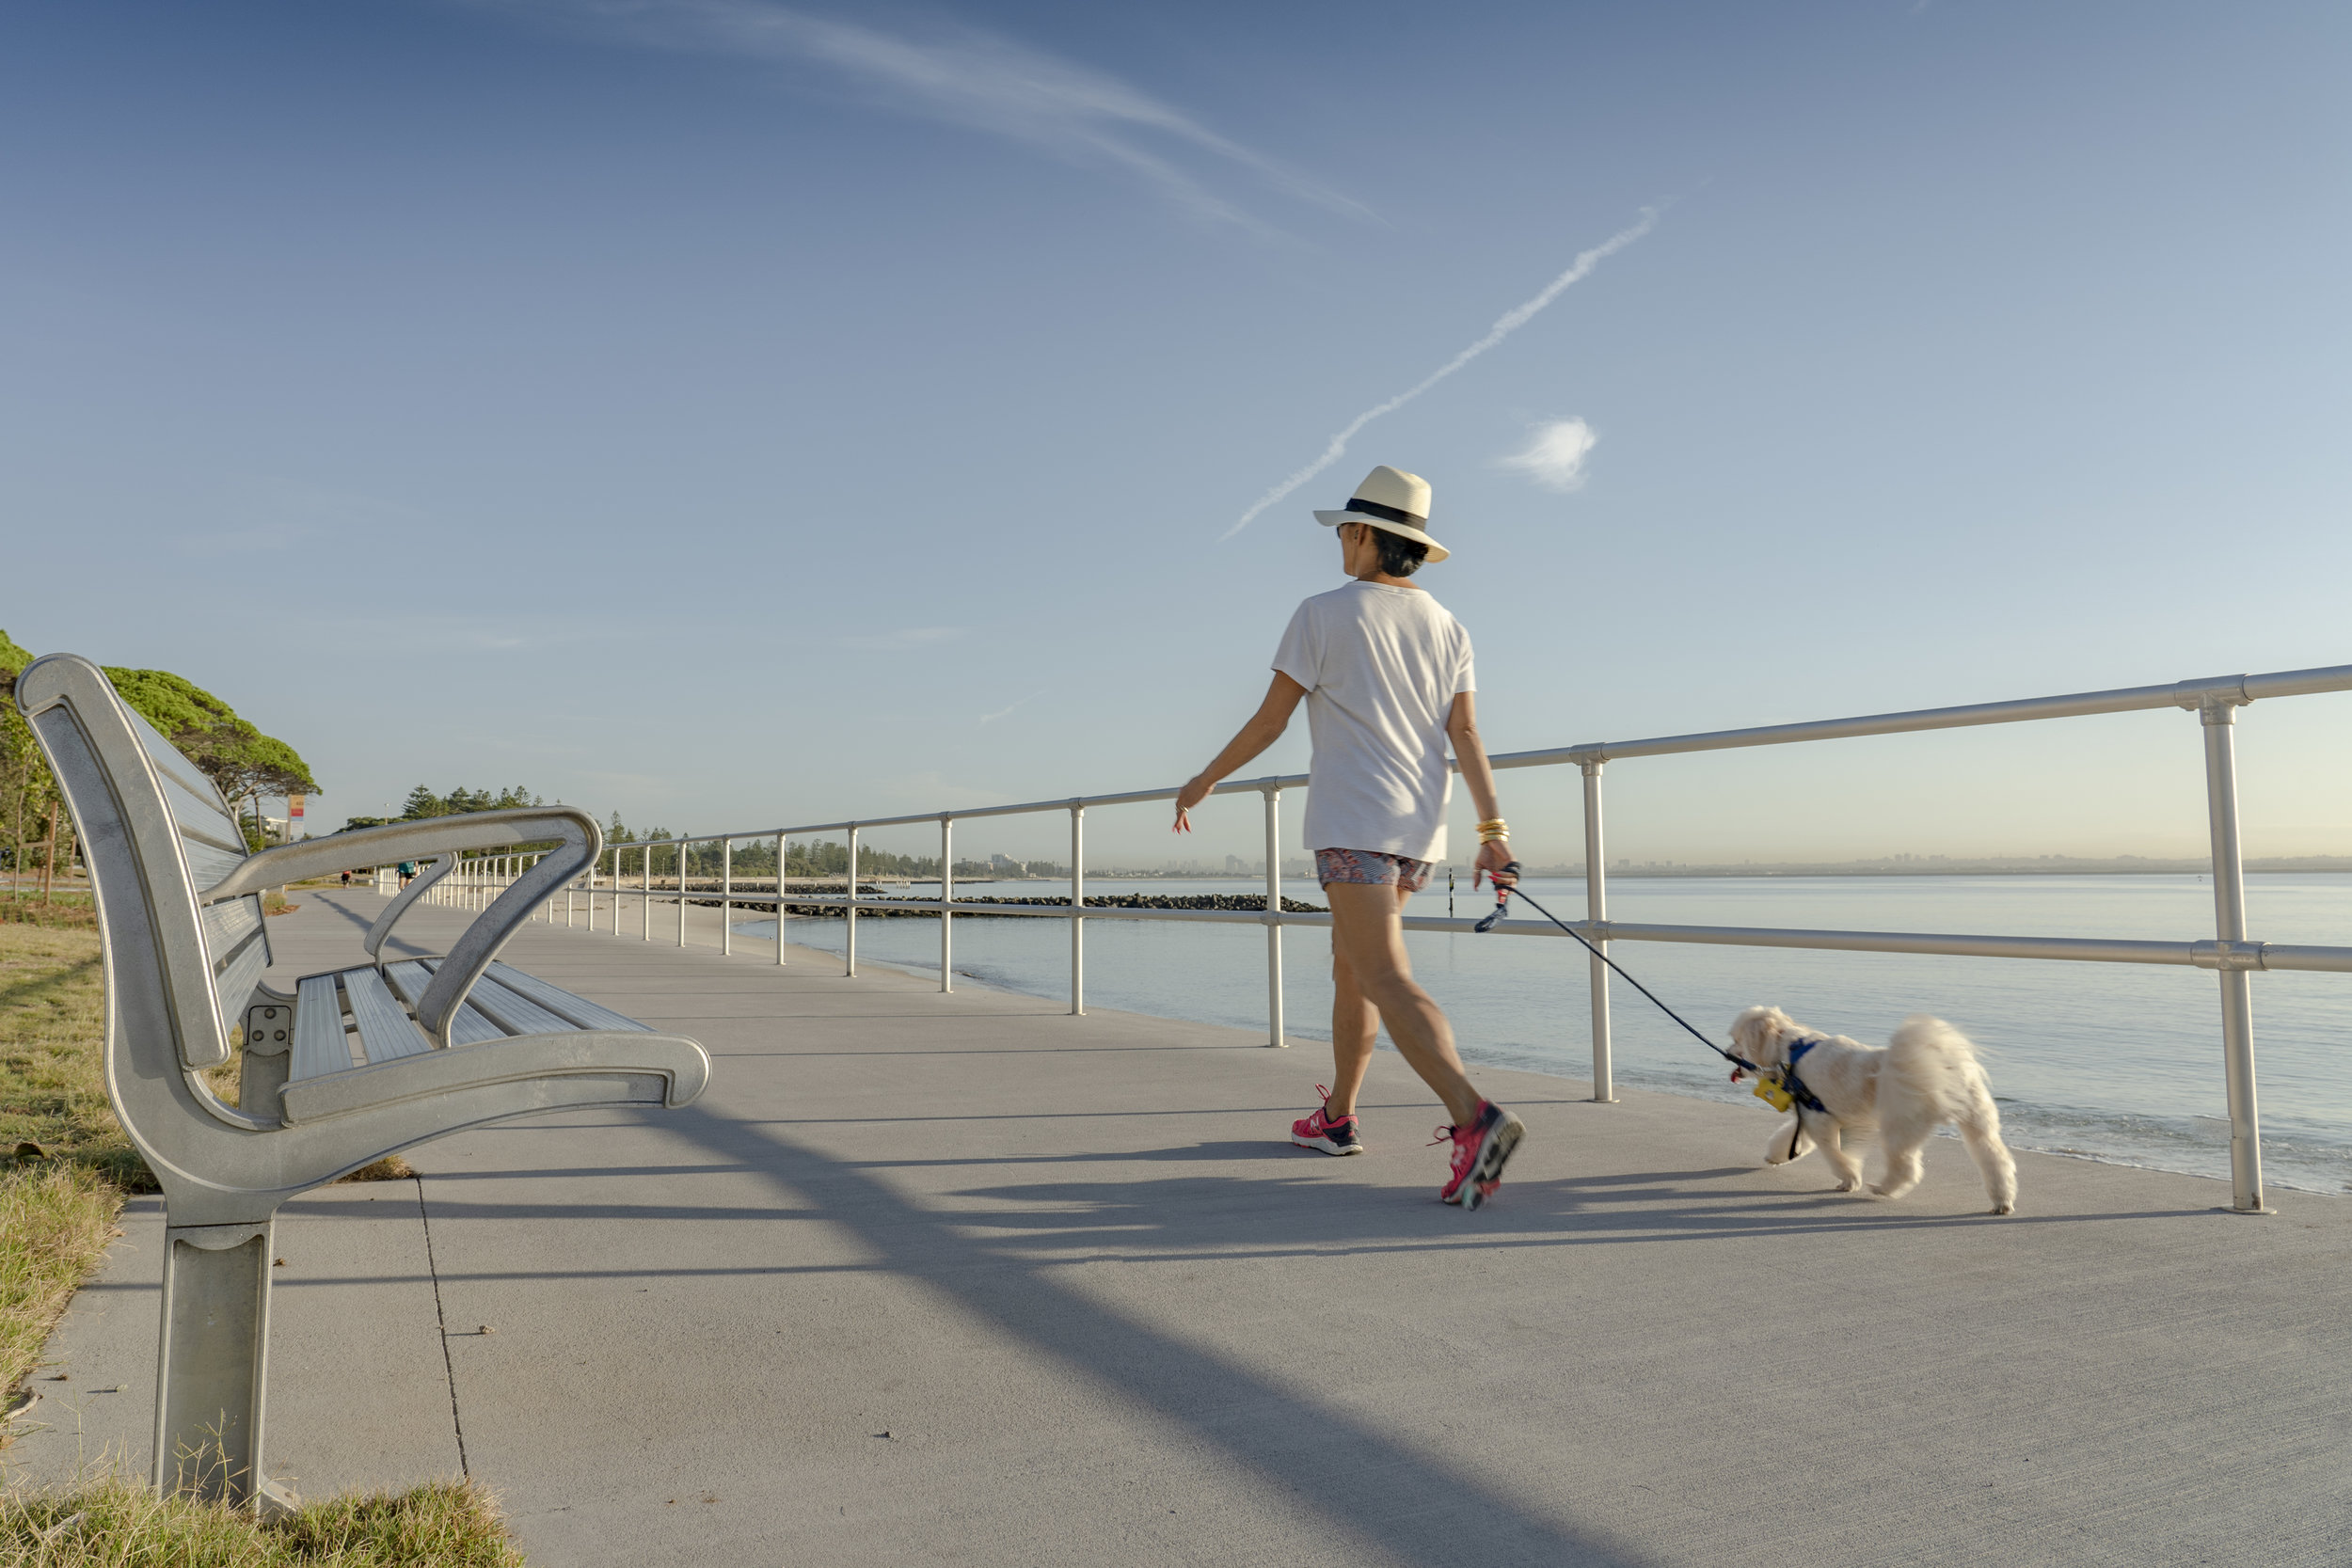 OUTSIDE = Fresh Air, Sunshine (vitamin D) and Exercise. Do you love the Outdoors? Get your Health to where You want to Be !